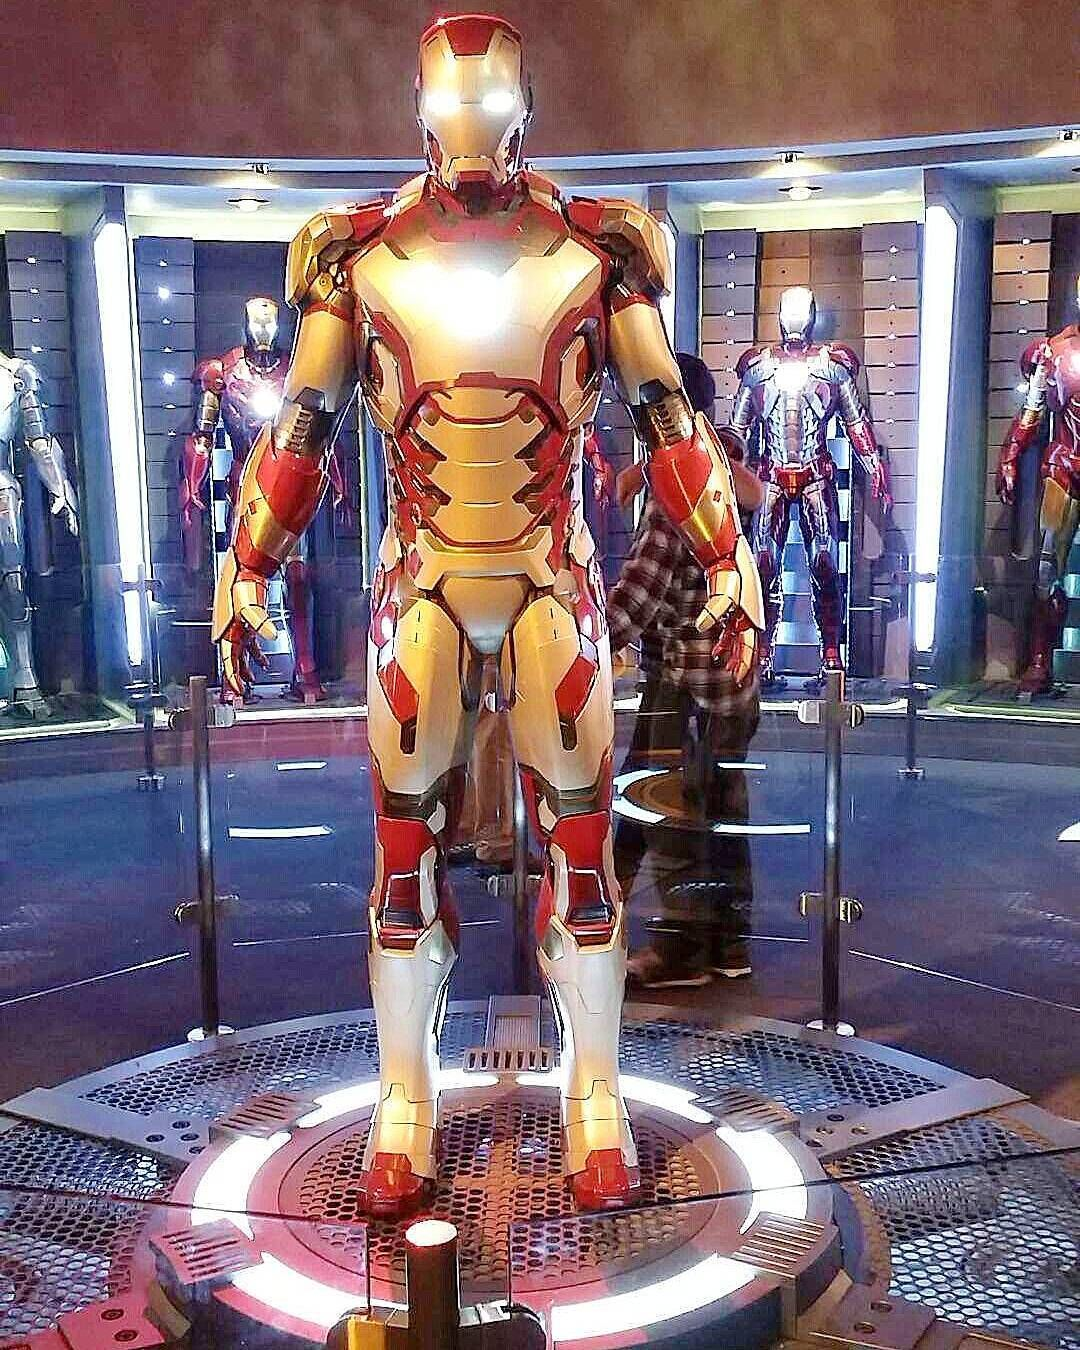 """I got the chance to geek out a little bit today while waiting to meet up with @jardene hahaha I lost my mind when they said """"Come take pictures with Thor!"""" .... but I didn't  #TGIM #experiencethemagic #avengersassemble #ironman #ironaddict #latepost #Disneyland by ehay079"""